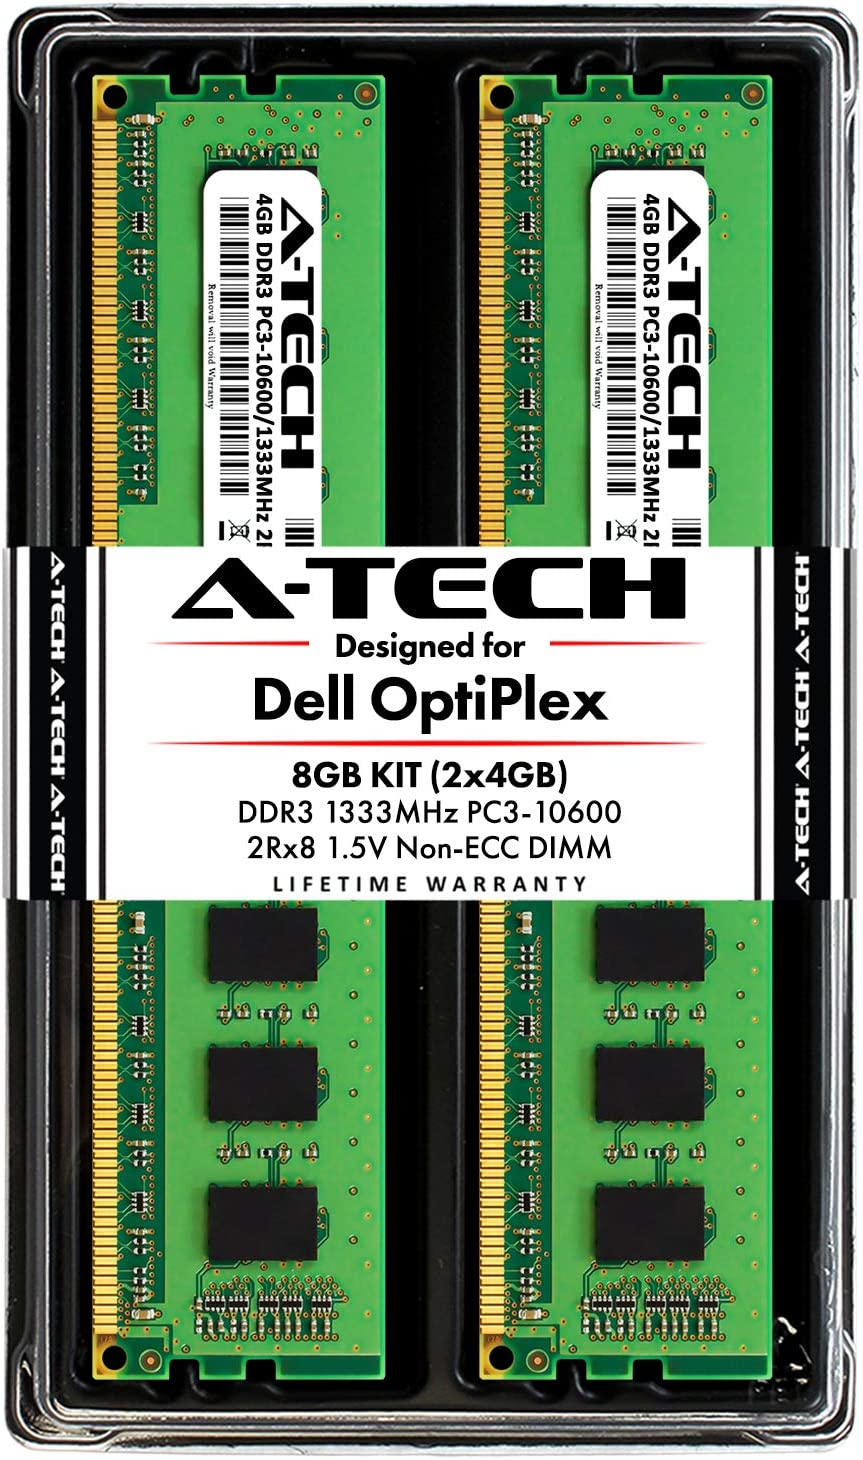 Desktop 4GB RAM Memory Upgrade for Dell Optiplex 990 DDR3-1333MHz 240-pin DIMM